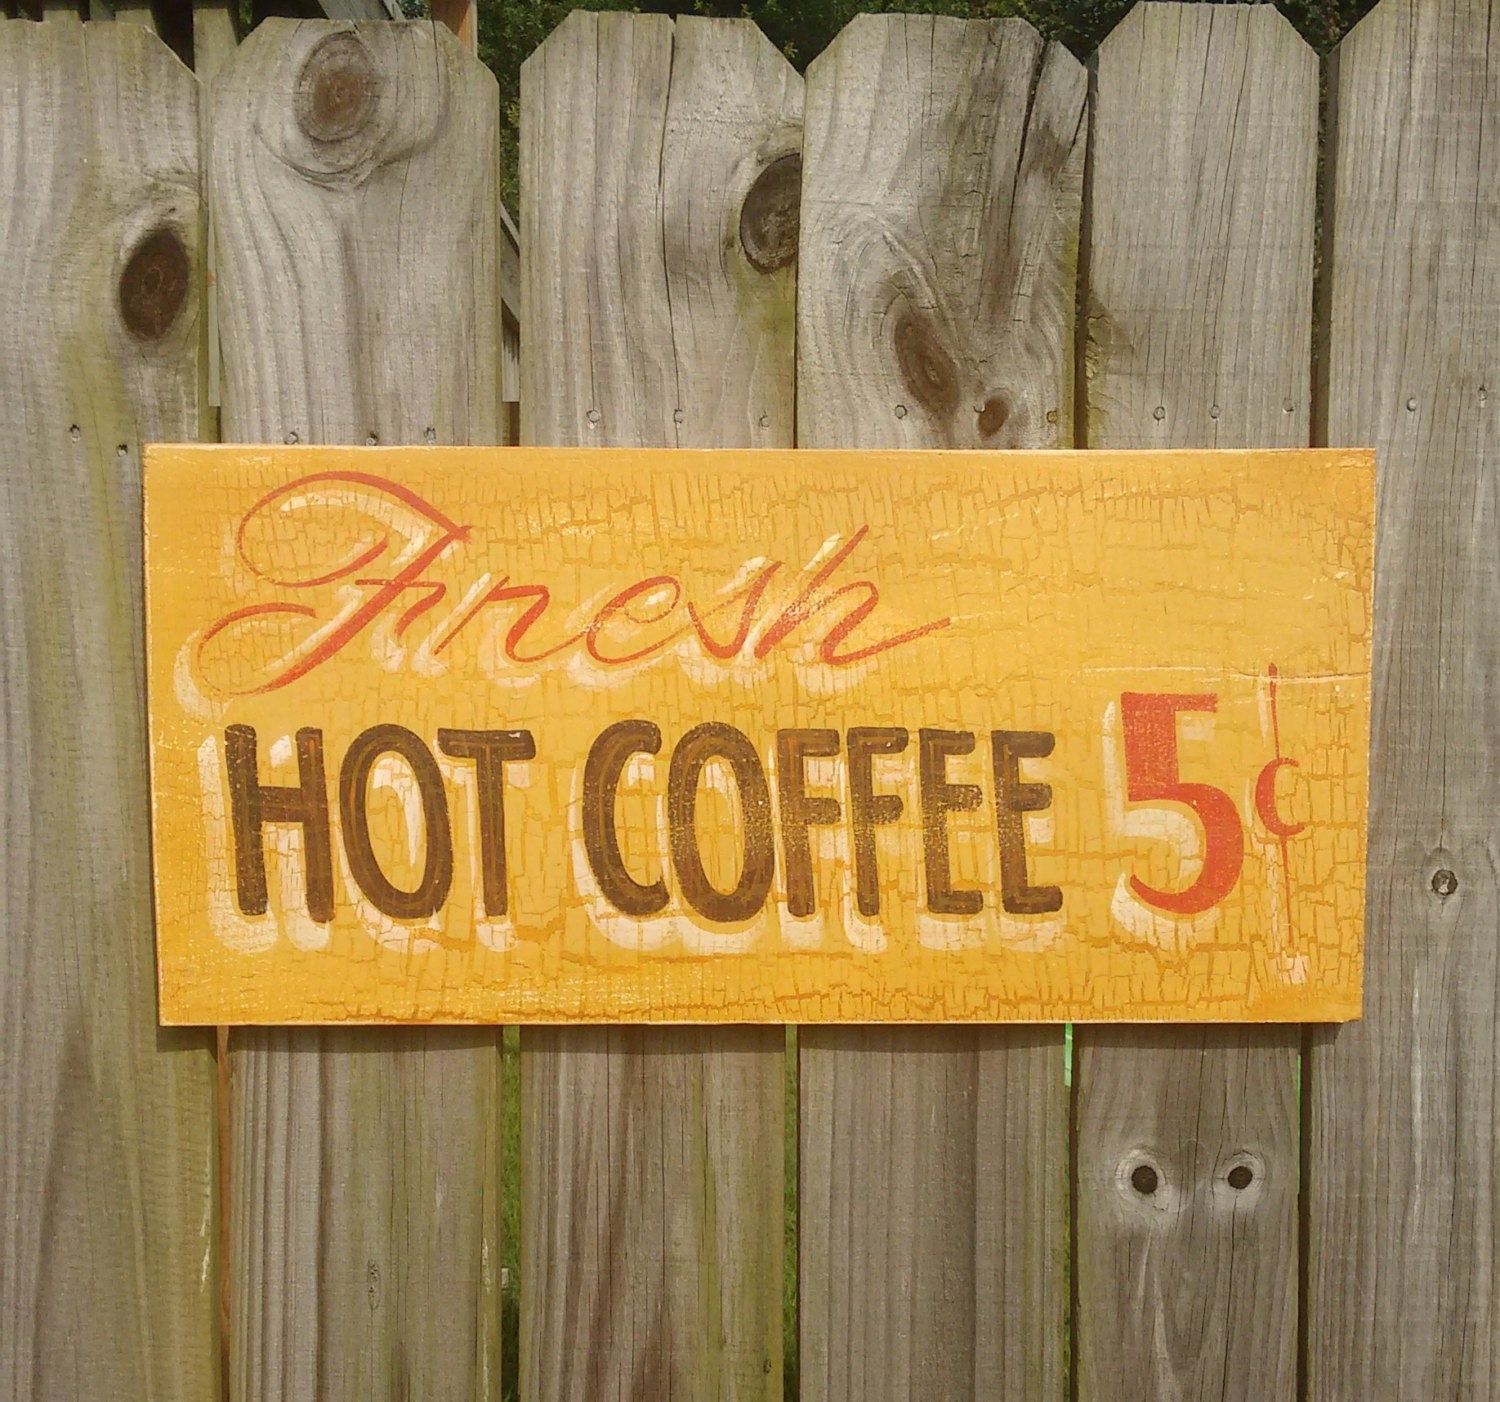 Coffee Shop Signs Kitchen Sign Kitchen Decor Cafe Sign. Coastal Chic Decor. Decor For Coffee Table. Dinner Room. Decorative Slipcovers. Lighthouse Wall Decor. Decorative Faceplates For Electrical Outlets. Wholesale Vintage Home Decor. Casino Decoration Ideas Party